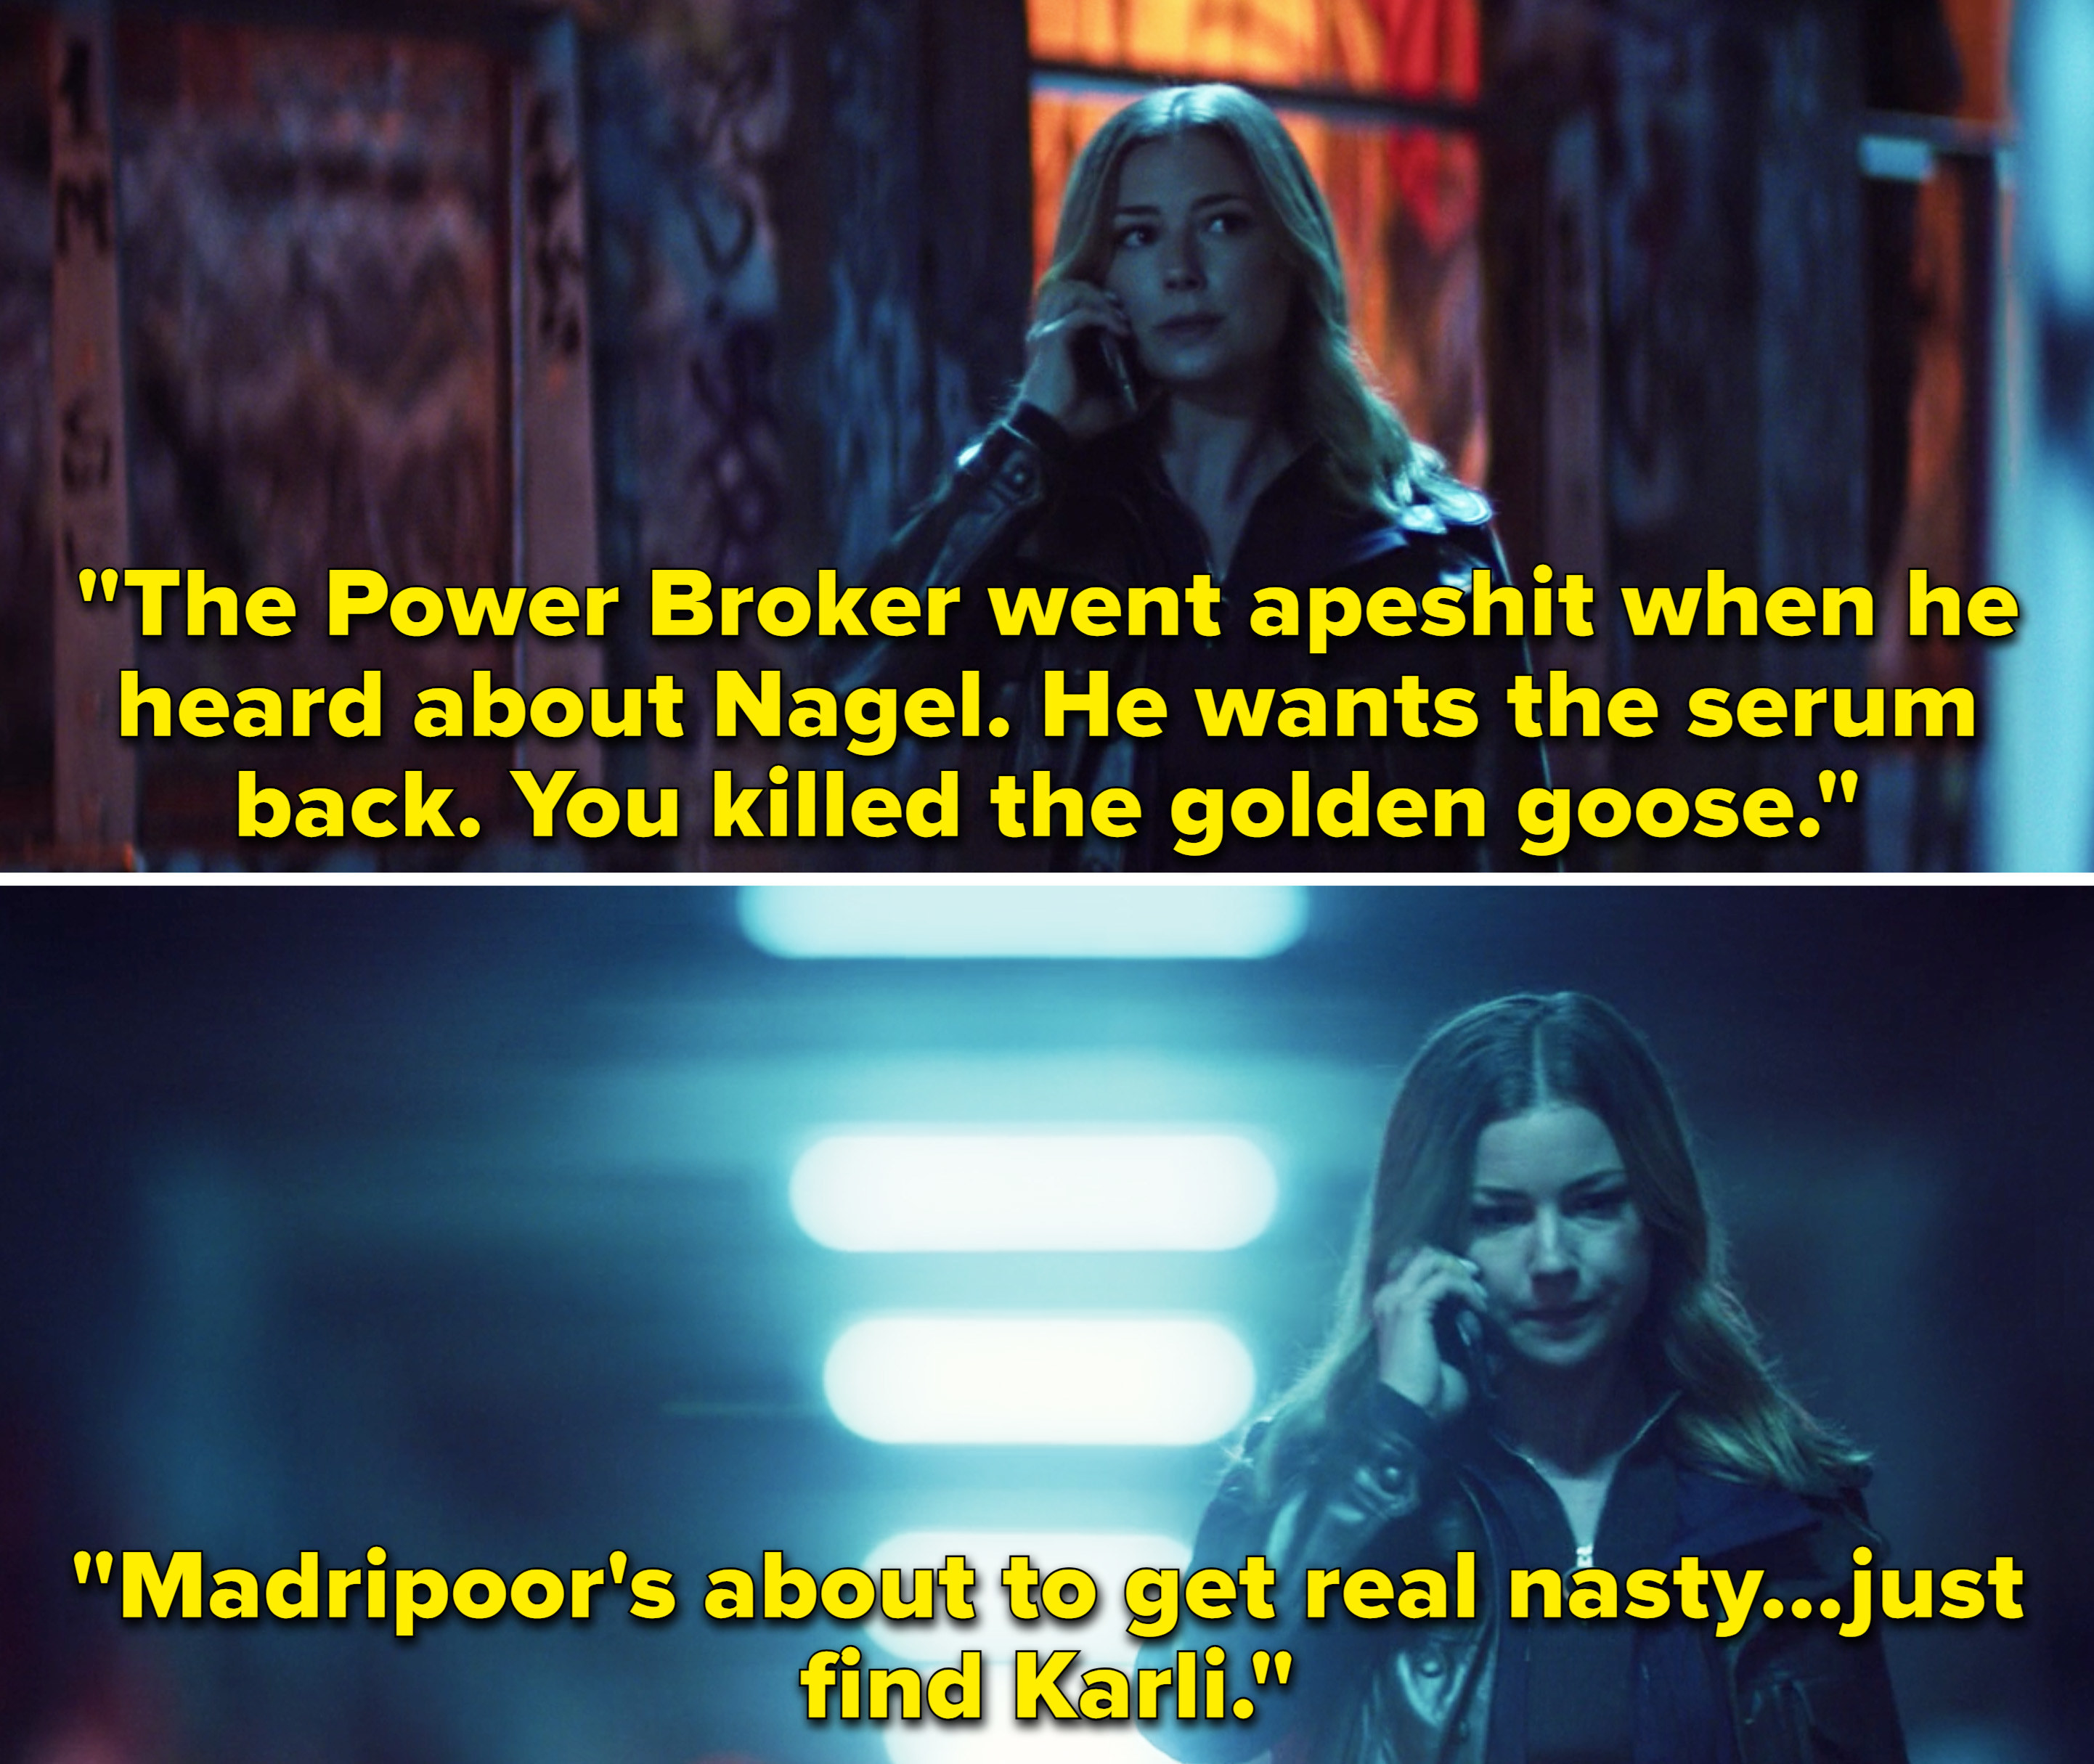 """Sharon saying that the Power Broker went wild after Nagel's death and Madripoor is """"about to get real nasty"""""""